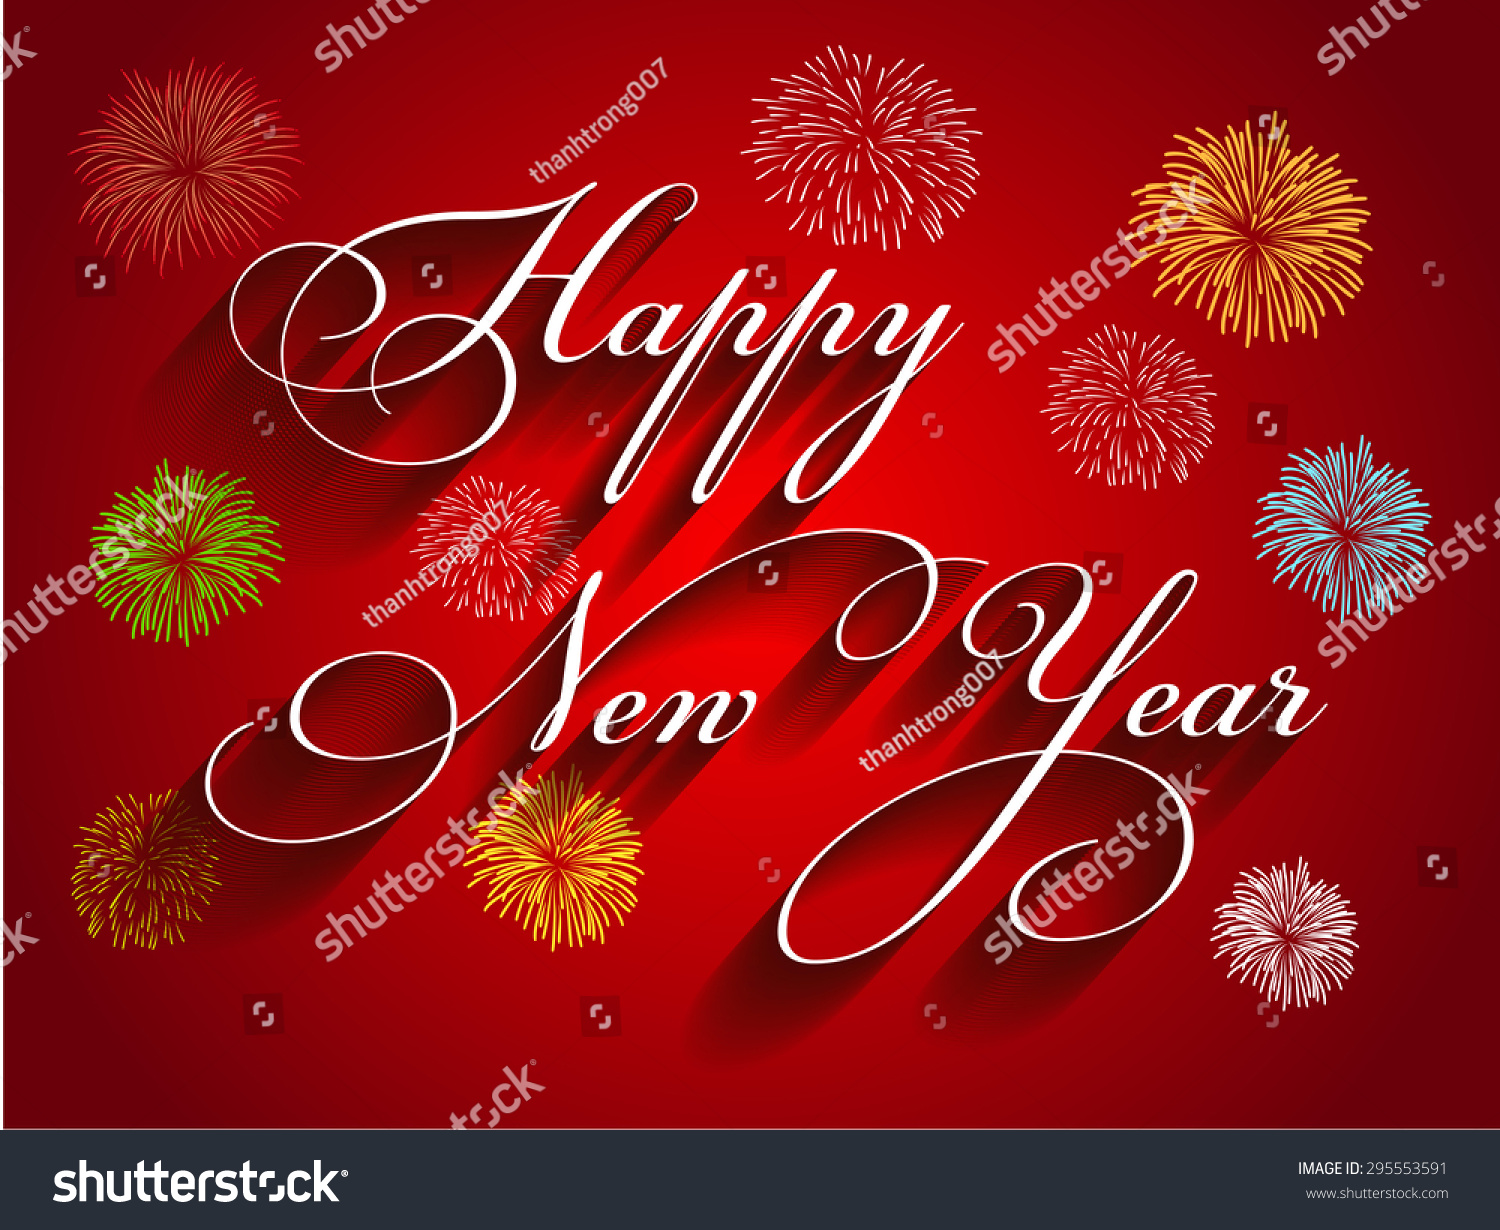 beautiful text happy new year with fireworks illustration